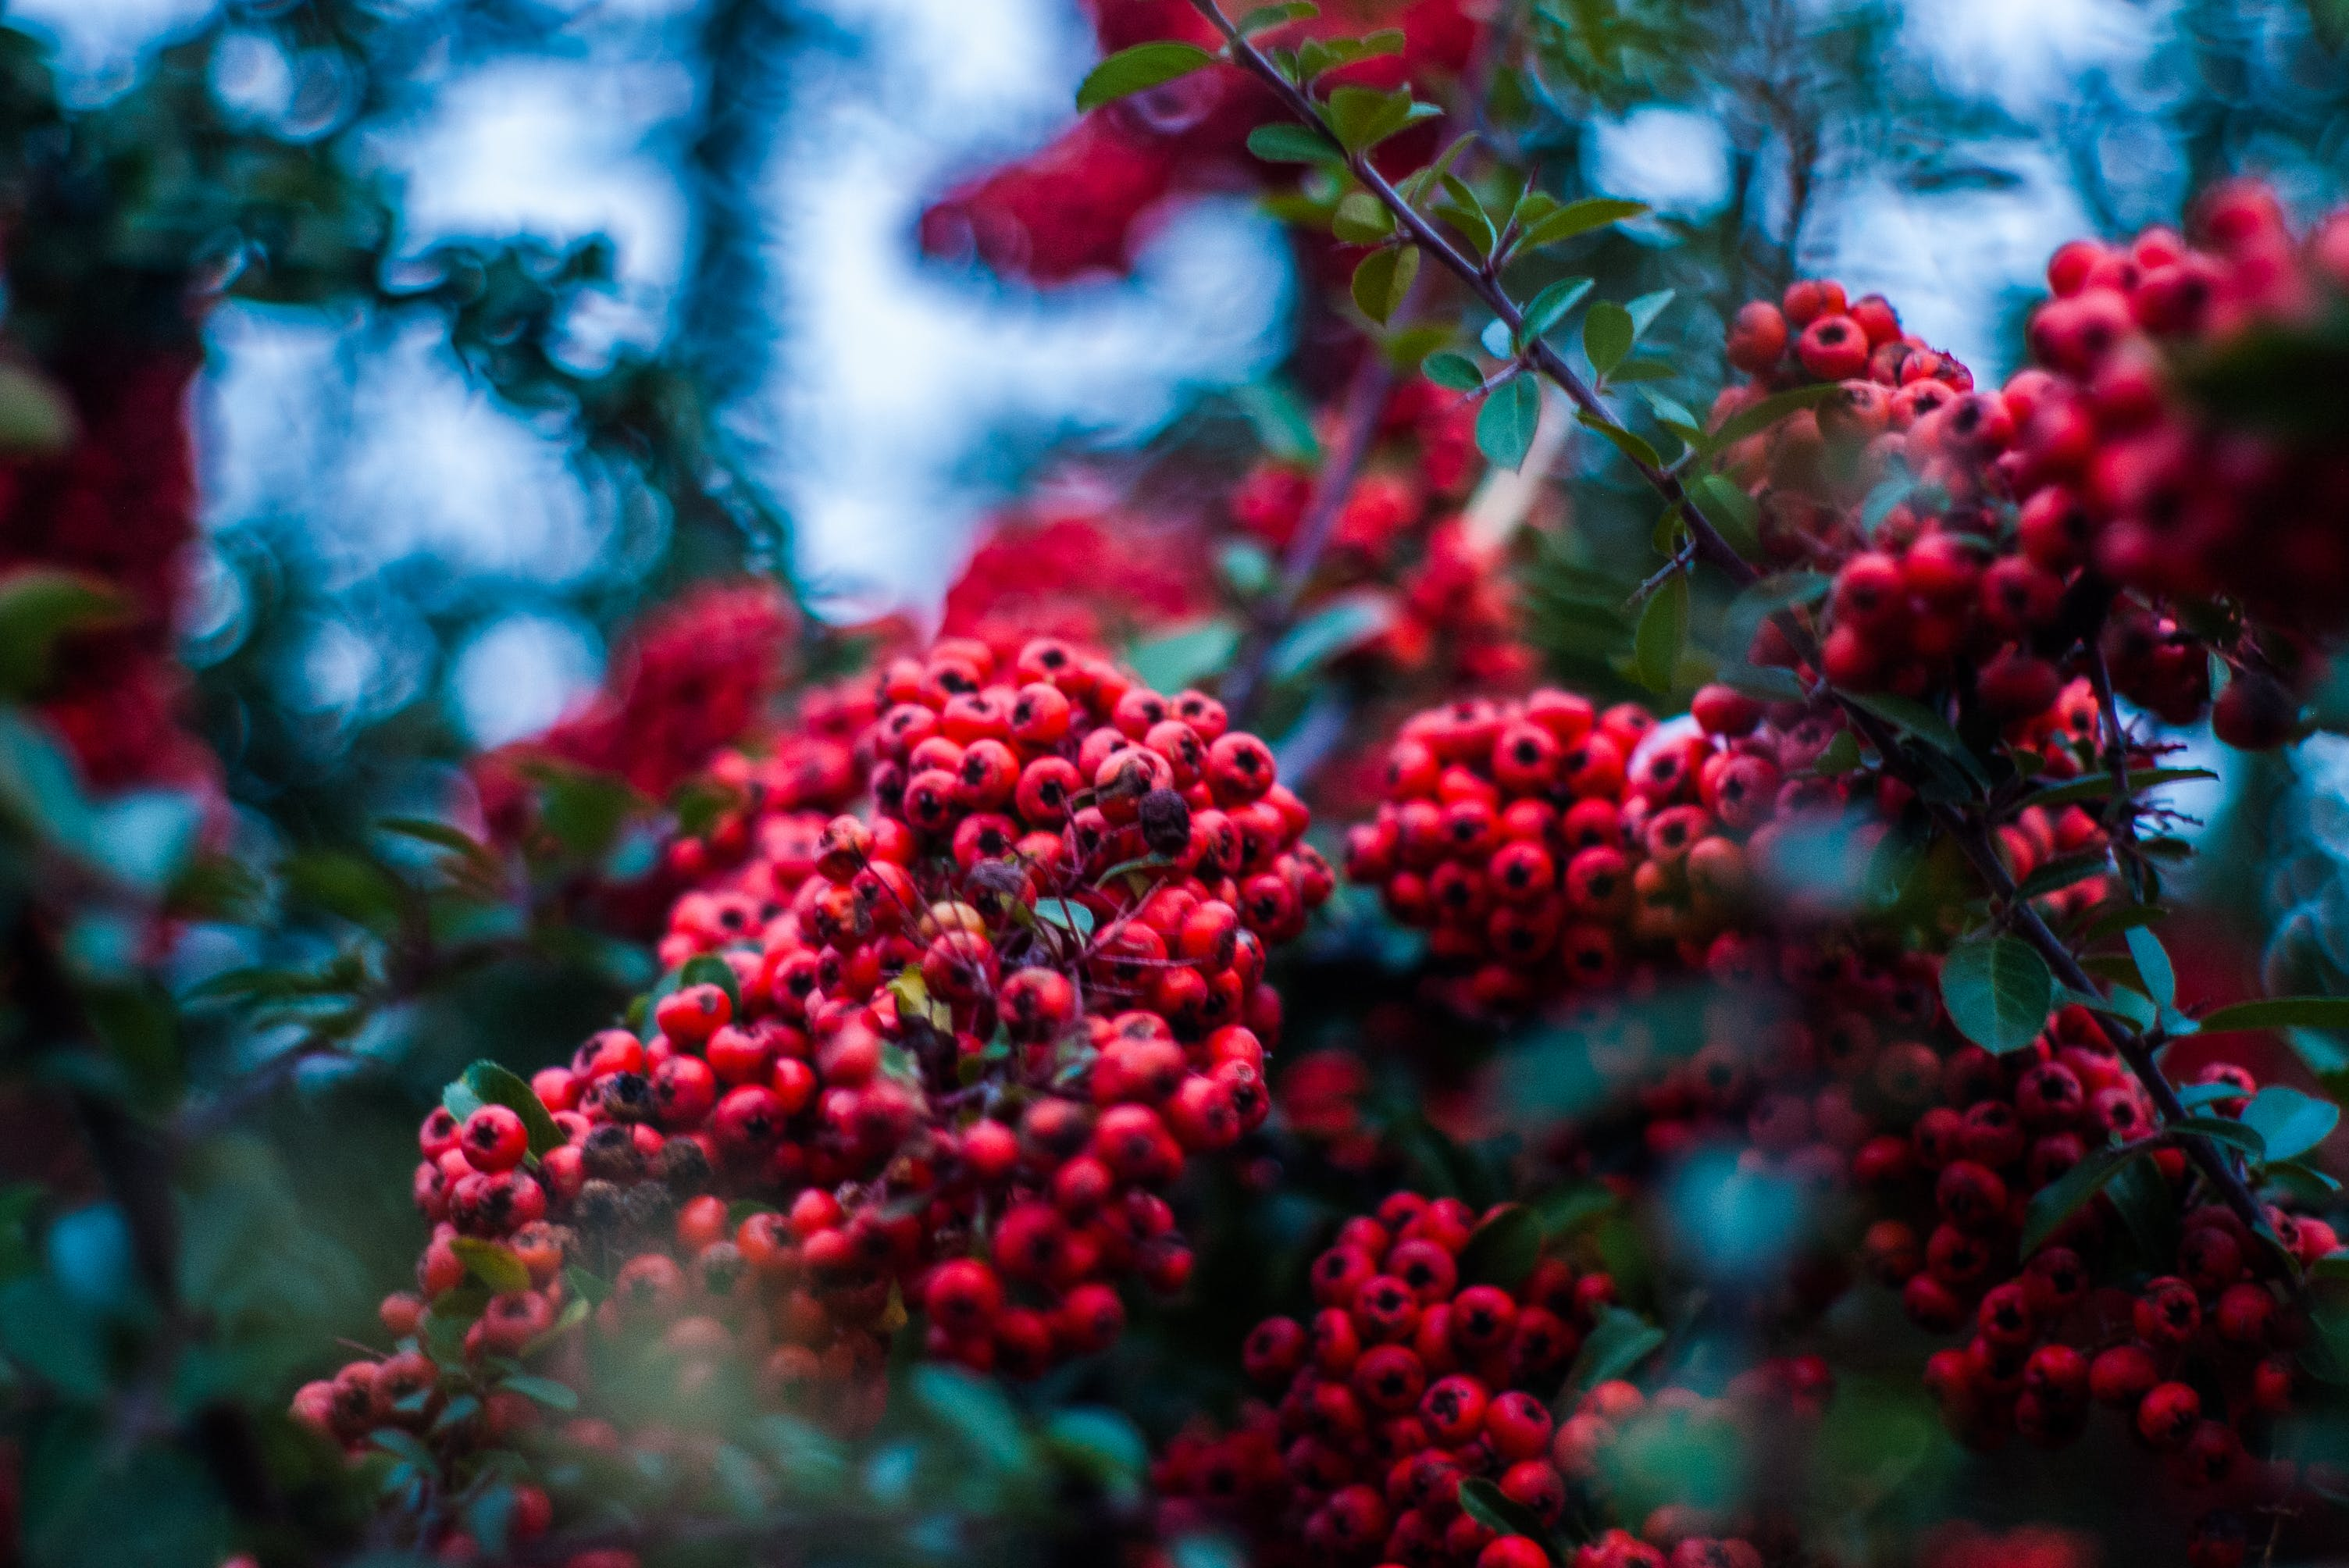 Selective Focus Photography of Red Wild Berry